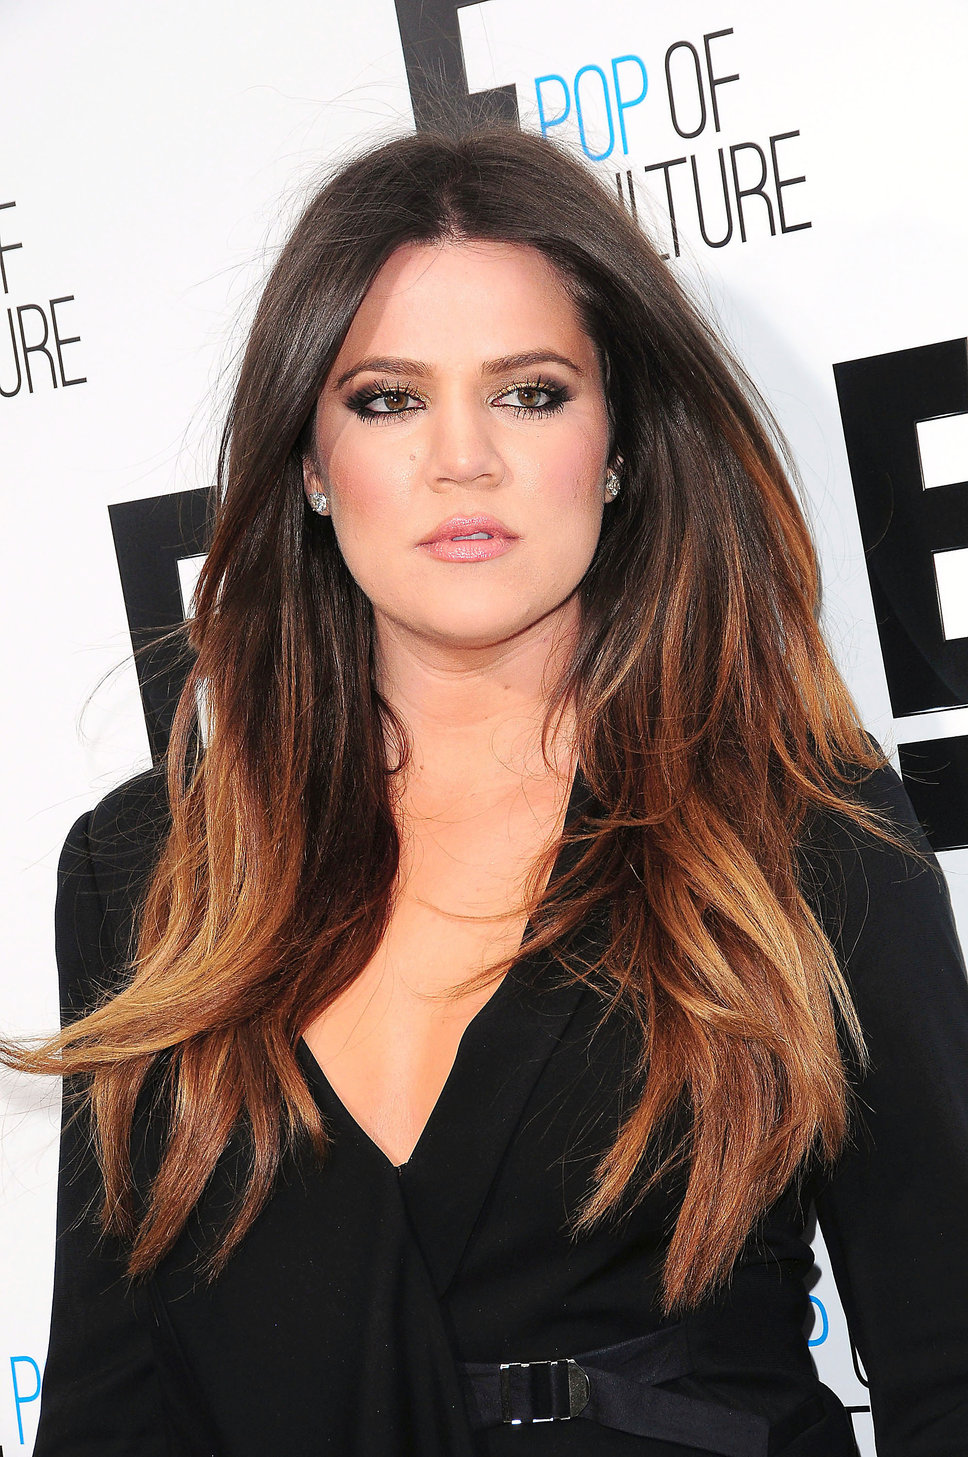 The Ombre Hairstyle Beauty And Craft Ideas